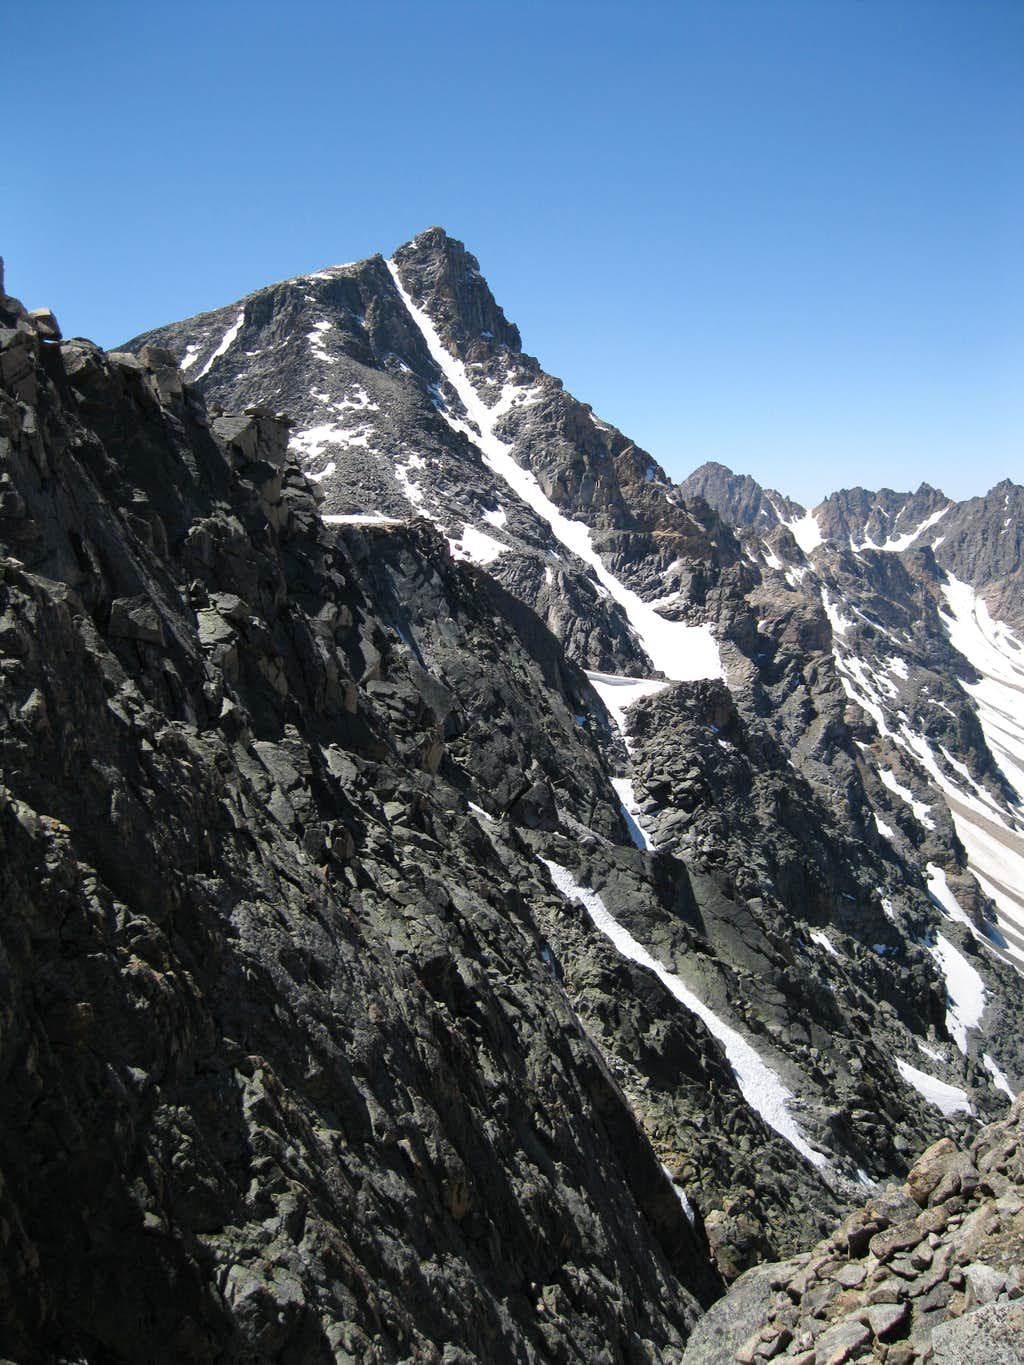 NE of Whitetail Peak